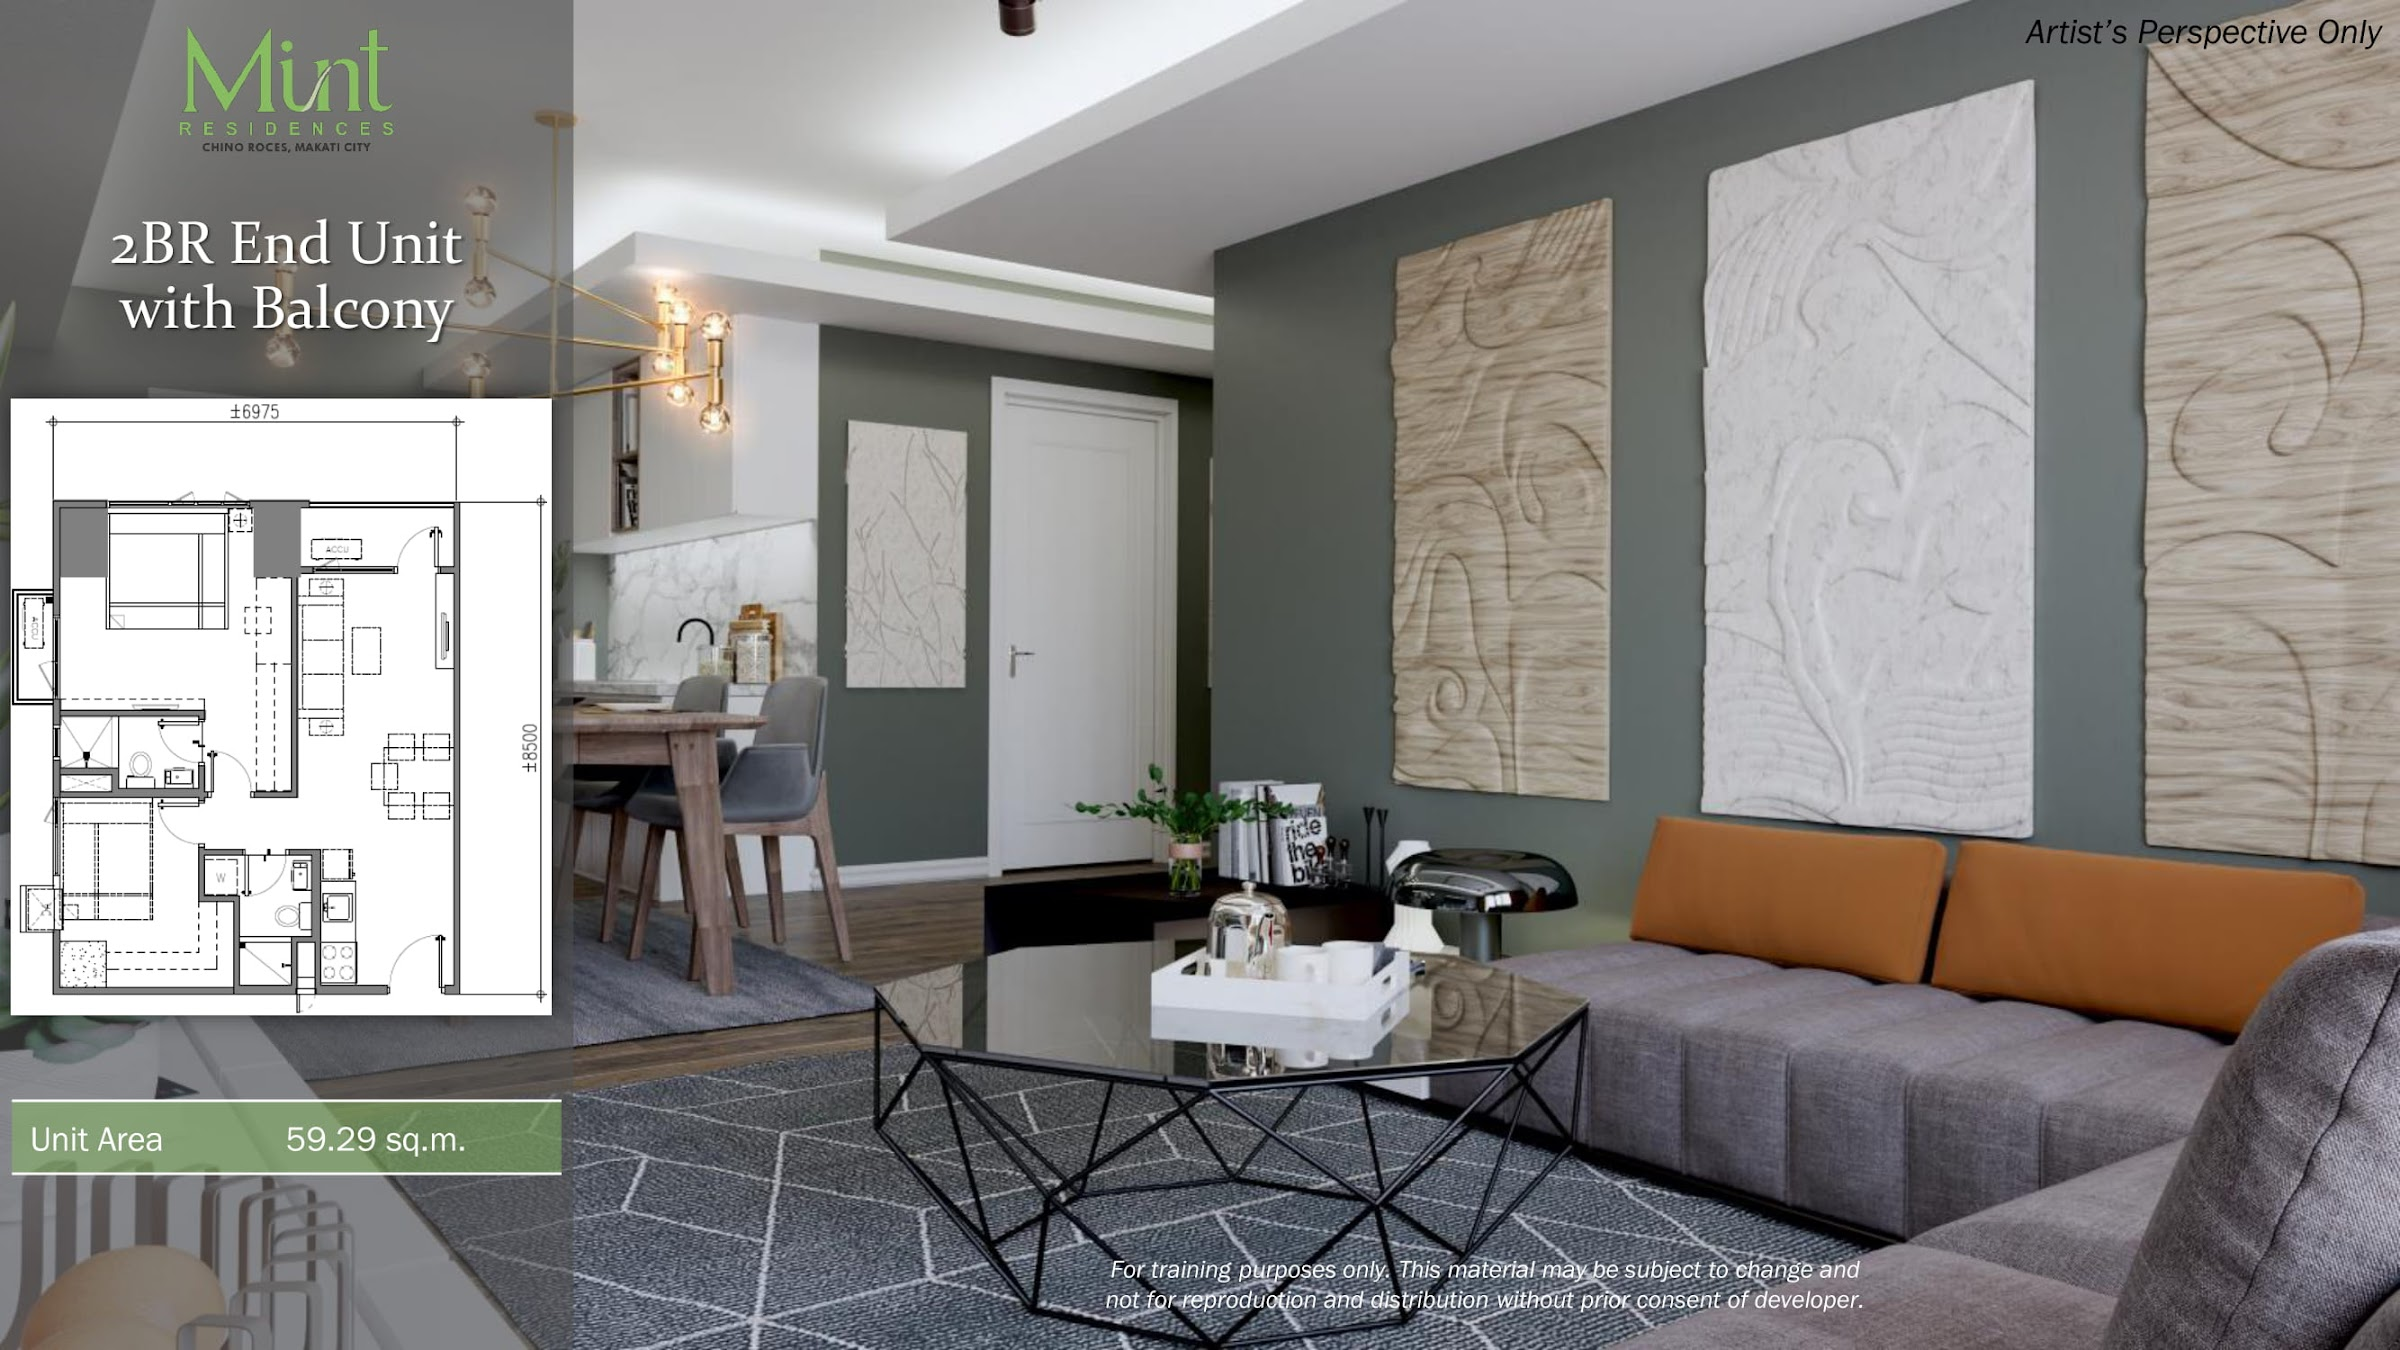 Mint Residences, Chino Roces Makati 2 bedroom end unit with balcony